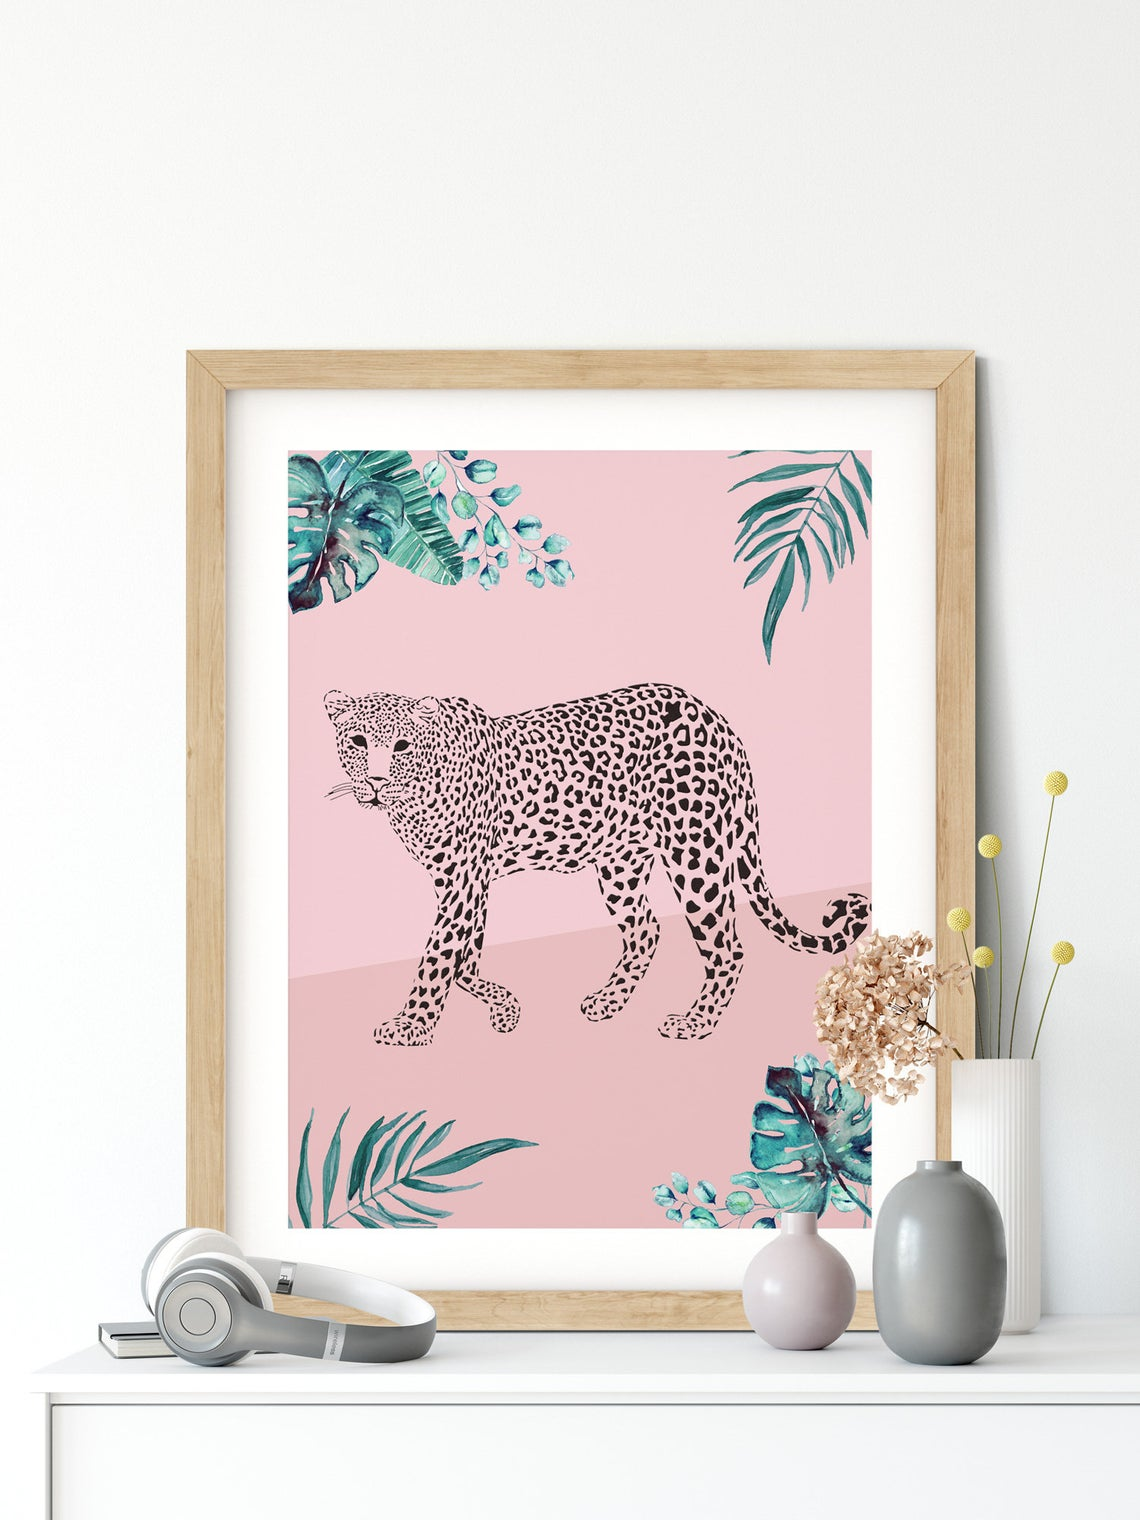 Leopard Wildlife Wall Art, Set of 2 Blush Pink Wall Art